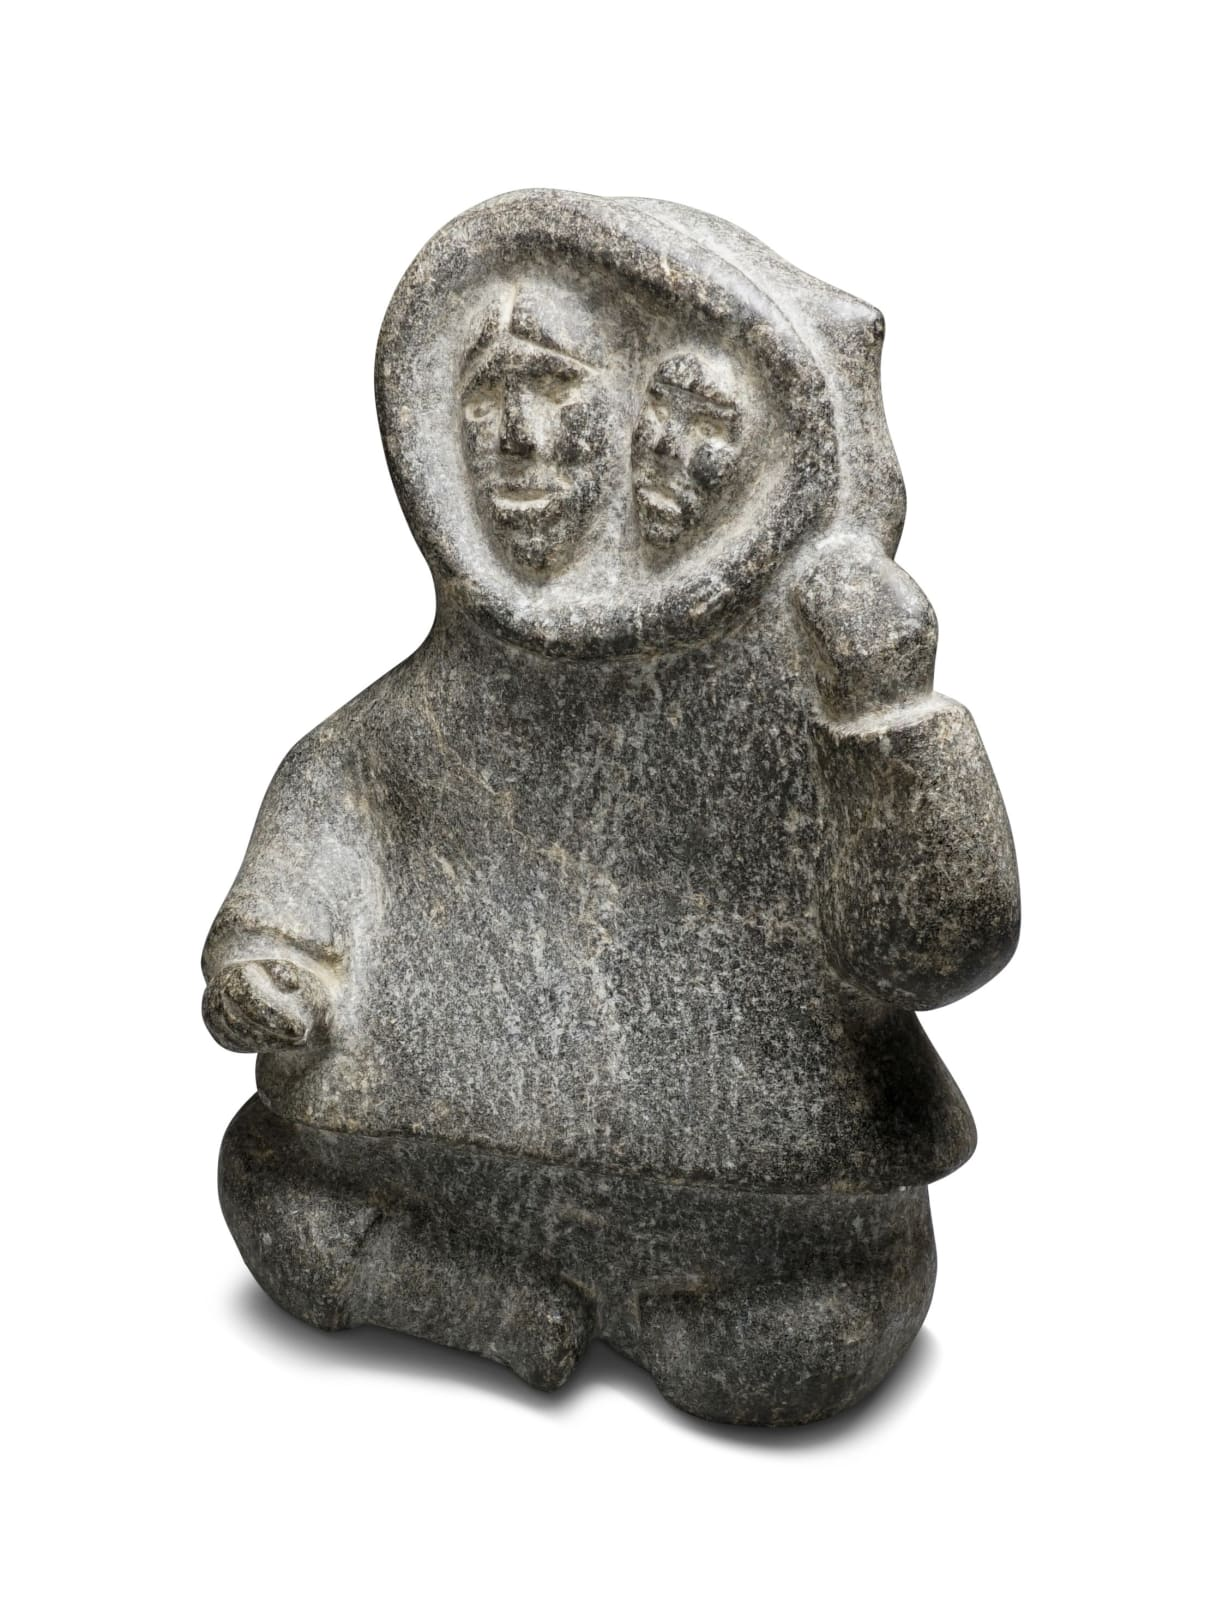 UNIDENTIFIED ARTIST, KINNGAIT (CAPE DORSET) Mother With Child in Her Amaut, early-mid 1950s stone, 11 x 8 x 5 in (27.9 x 20.3 x 12.7 cm) ESTIMATE: $1,000 — $1,500 New Price: $600